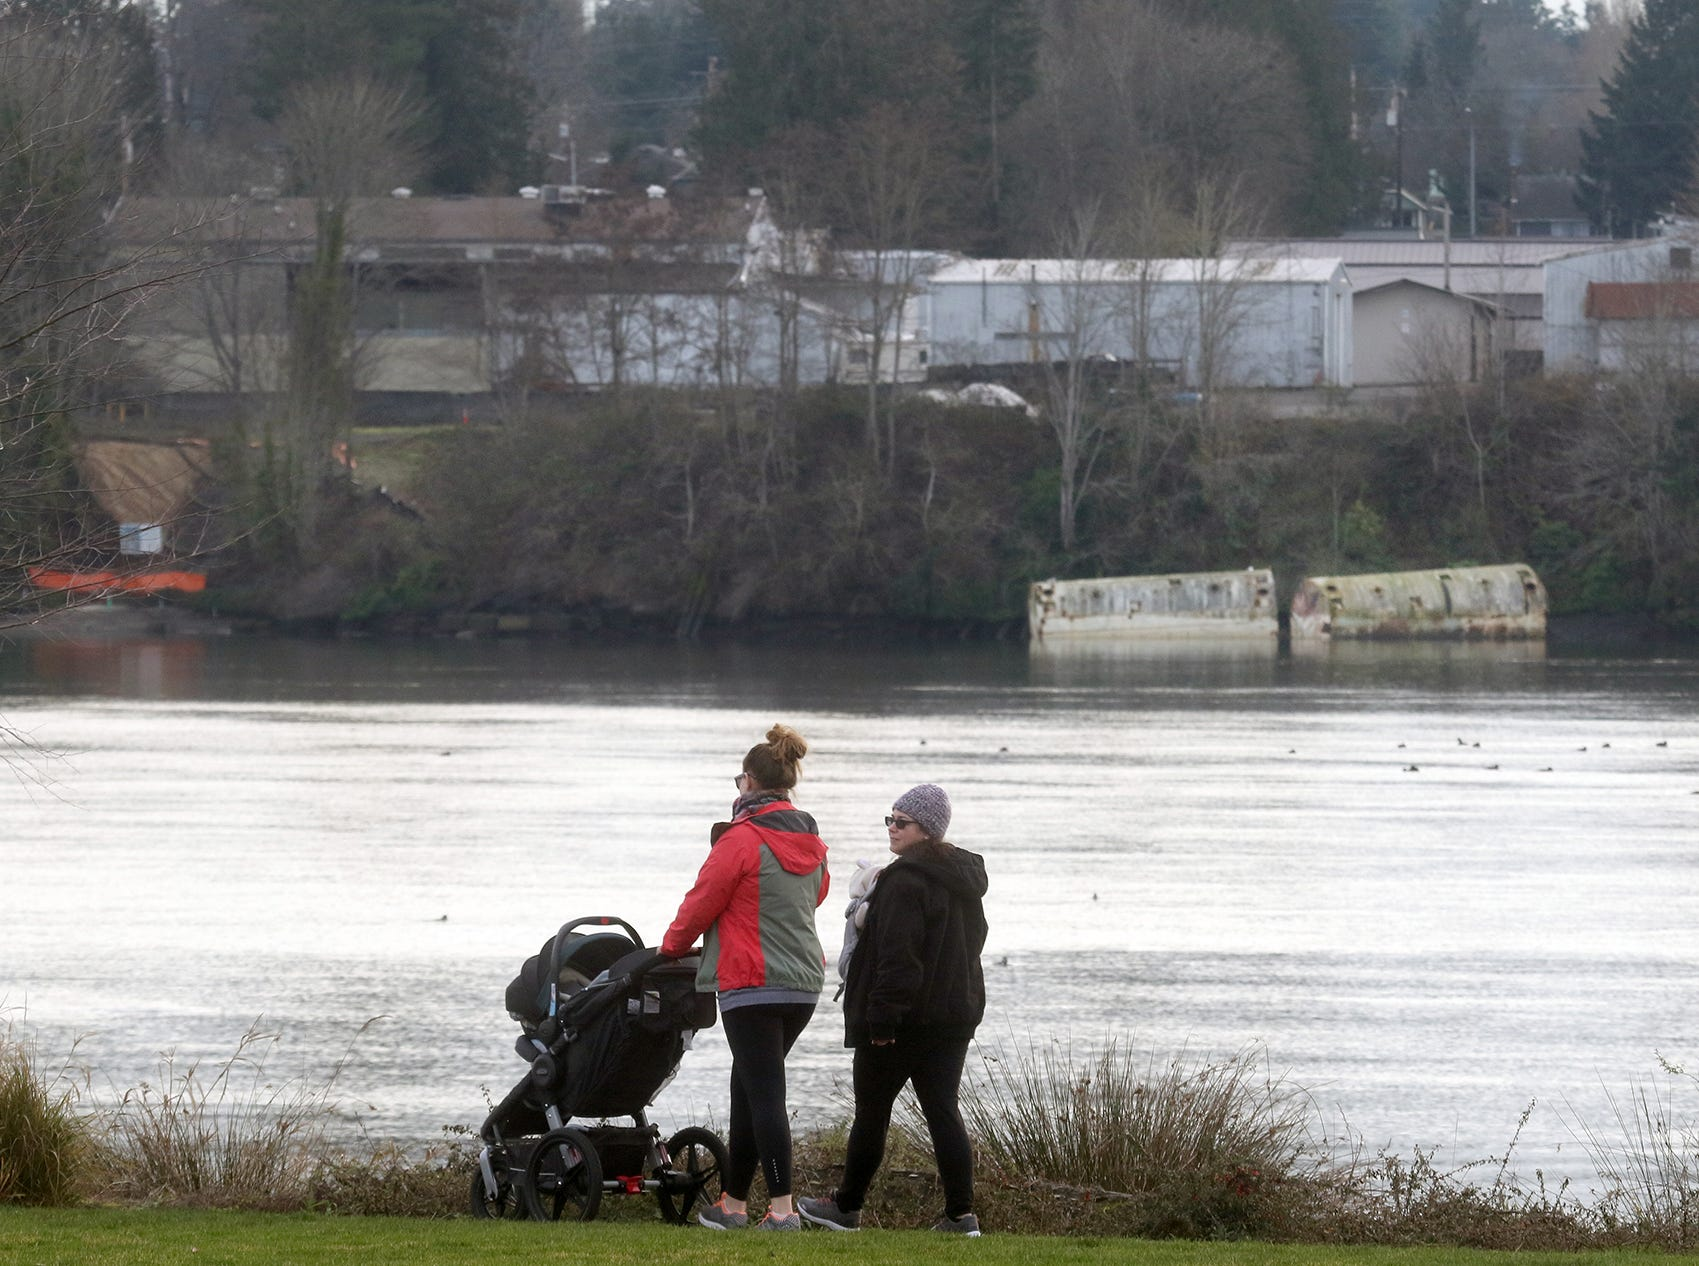 A pair of path walkers at Lions park across the water from the two ballast tanks at the north end of the Penn Plaza property that are resting on the beach in West Bremerton on Wednesday, January, 16, 2019.